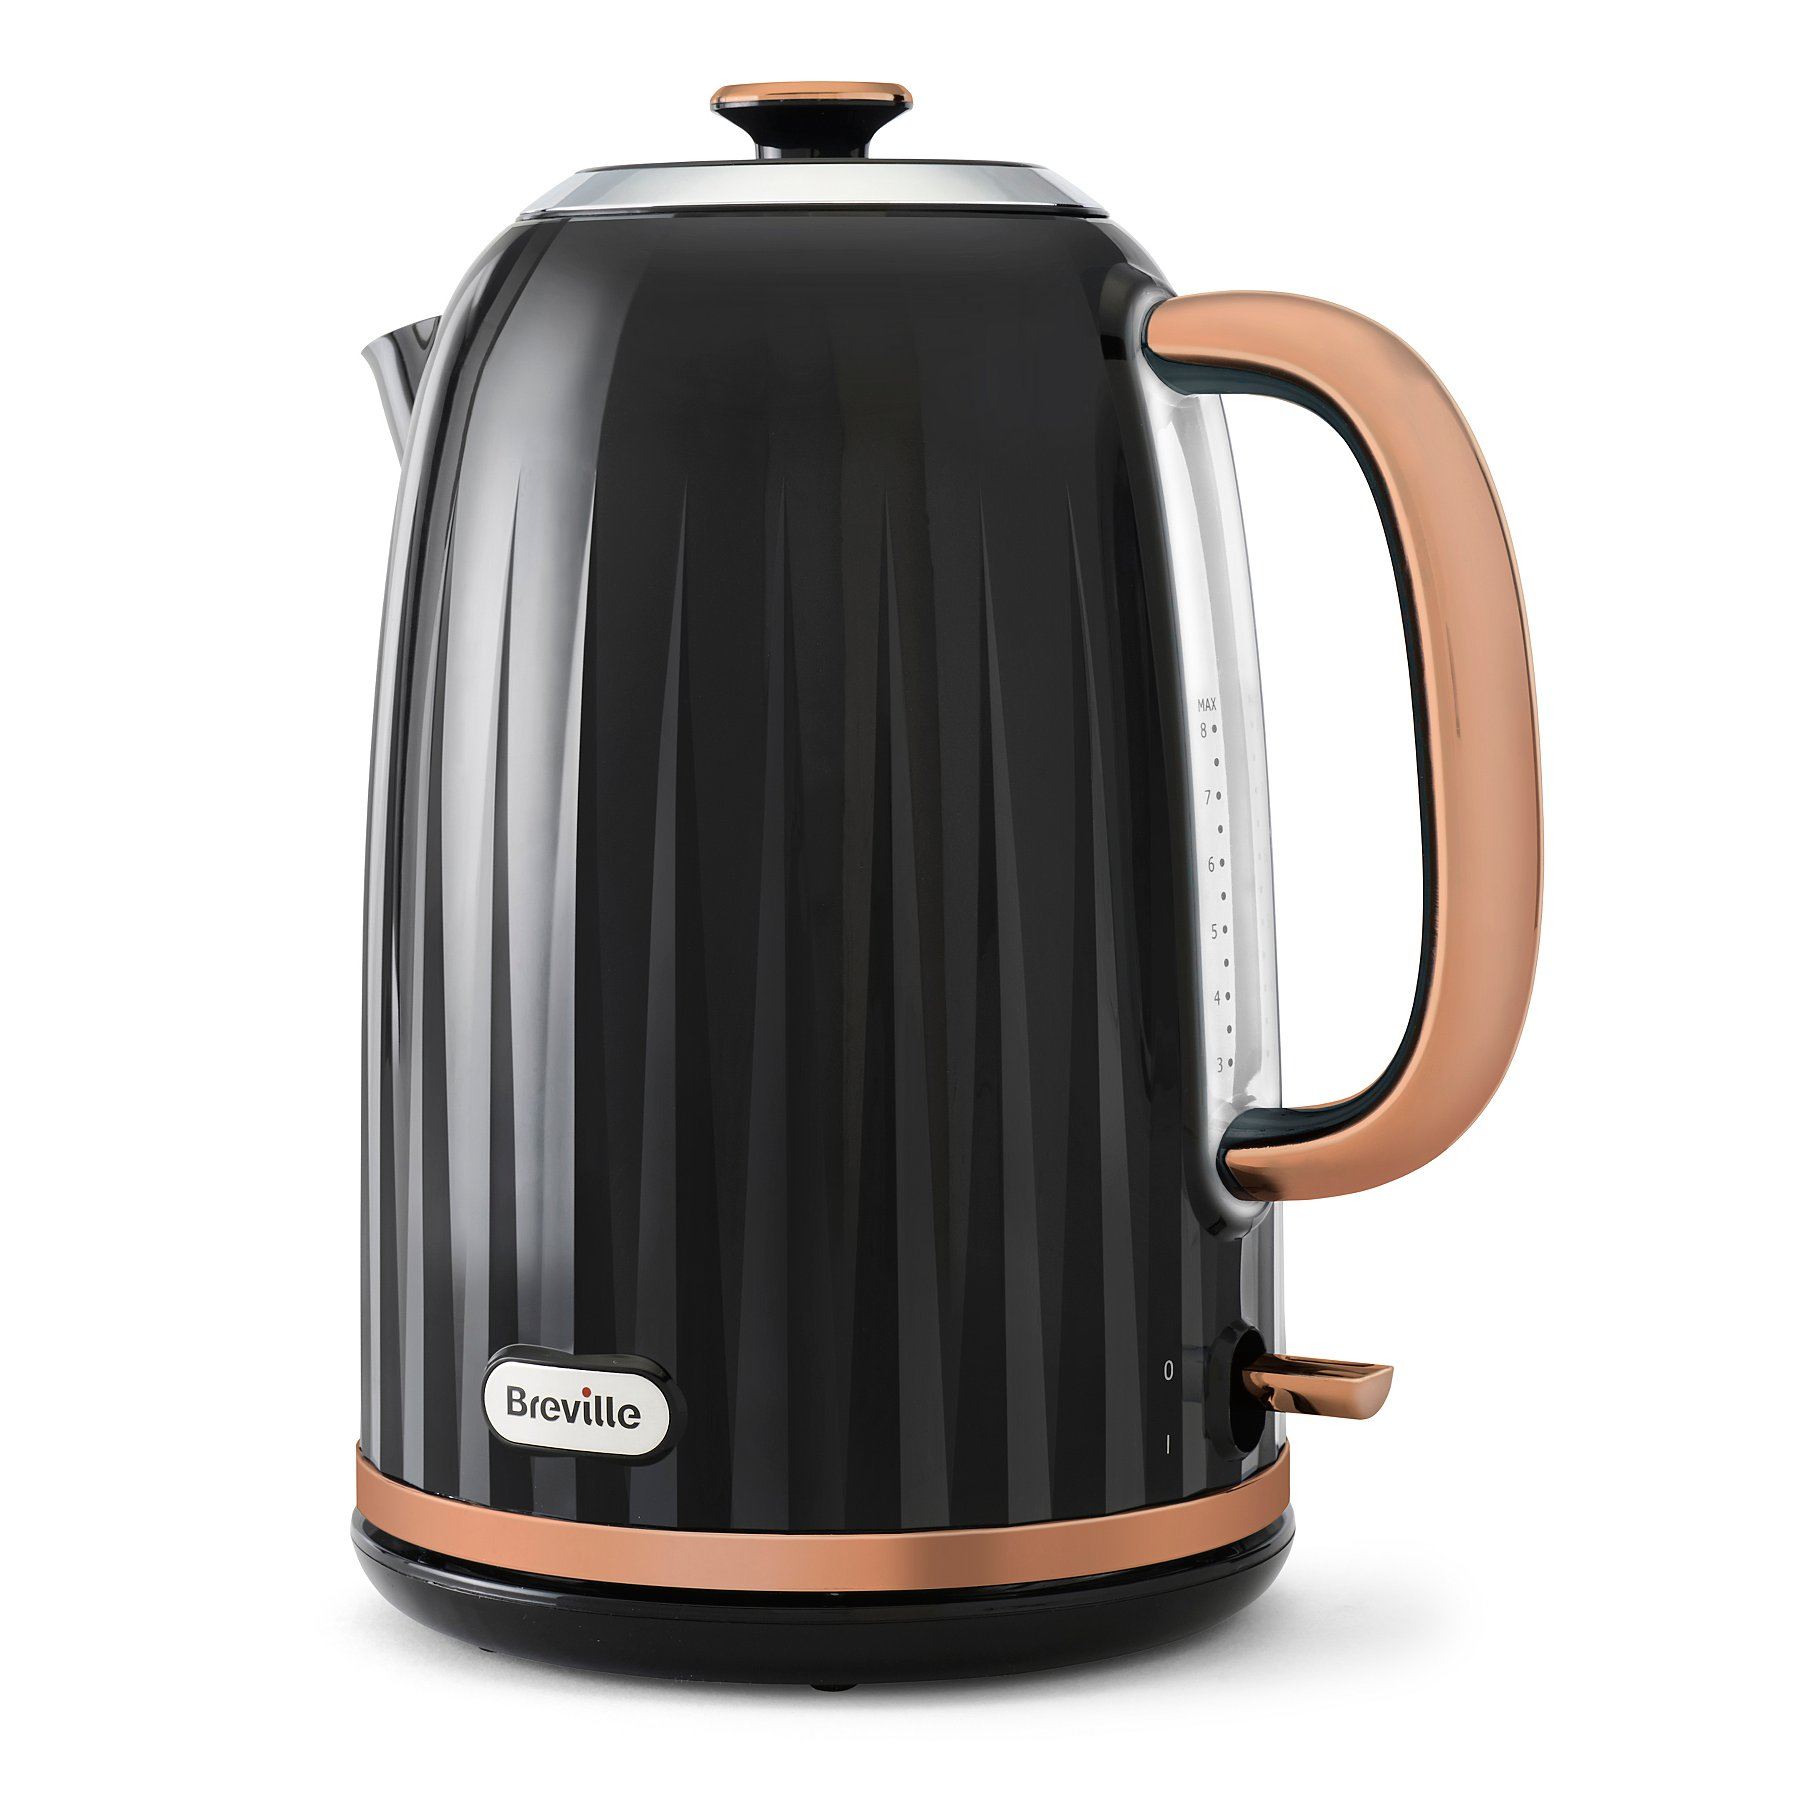 Why this Breville Impressions kettle is